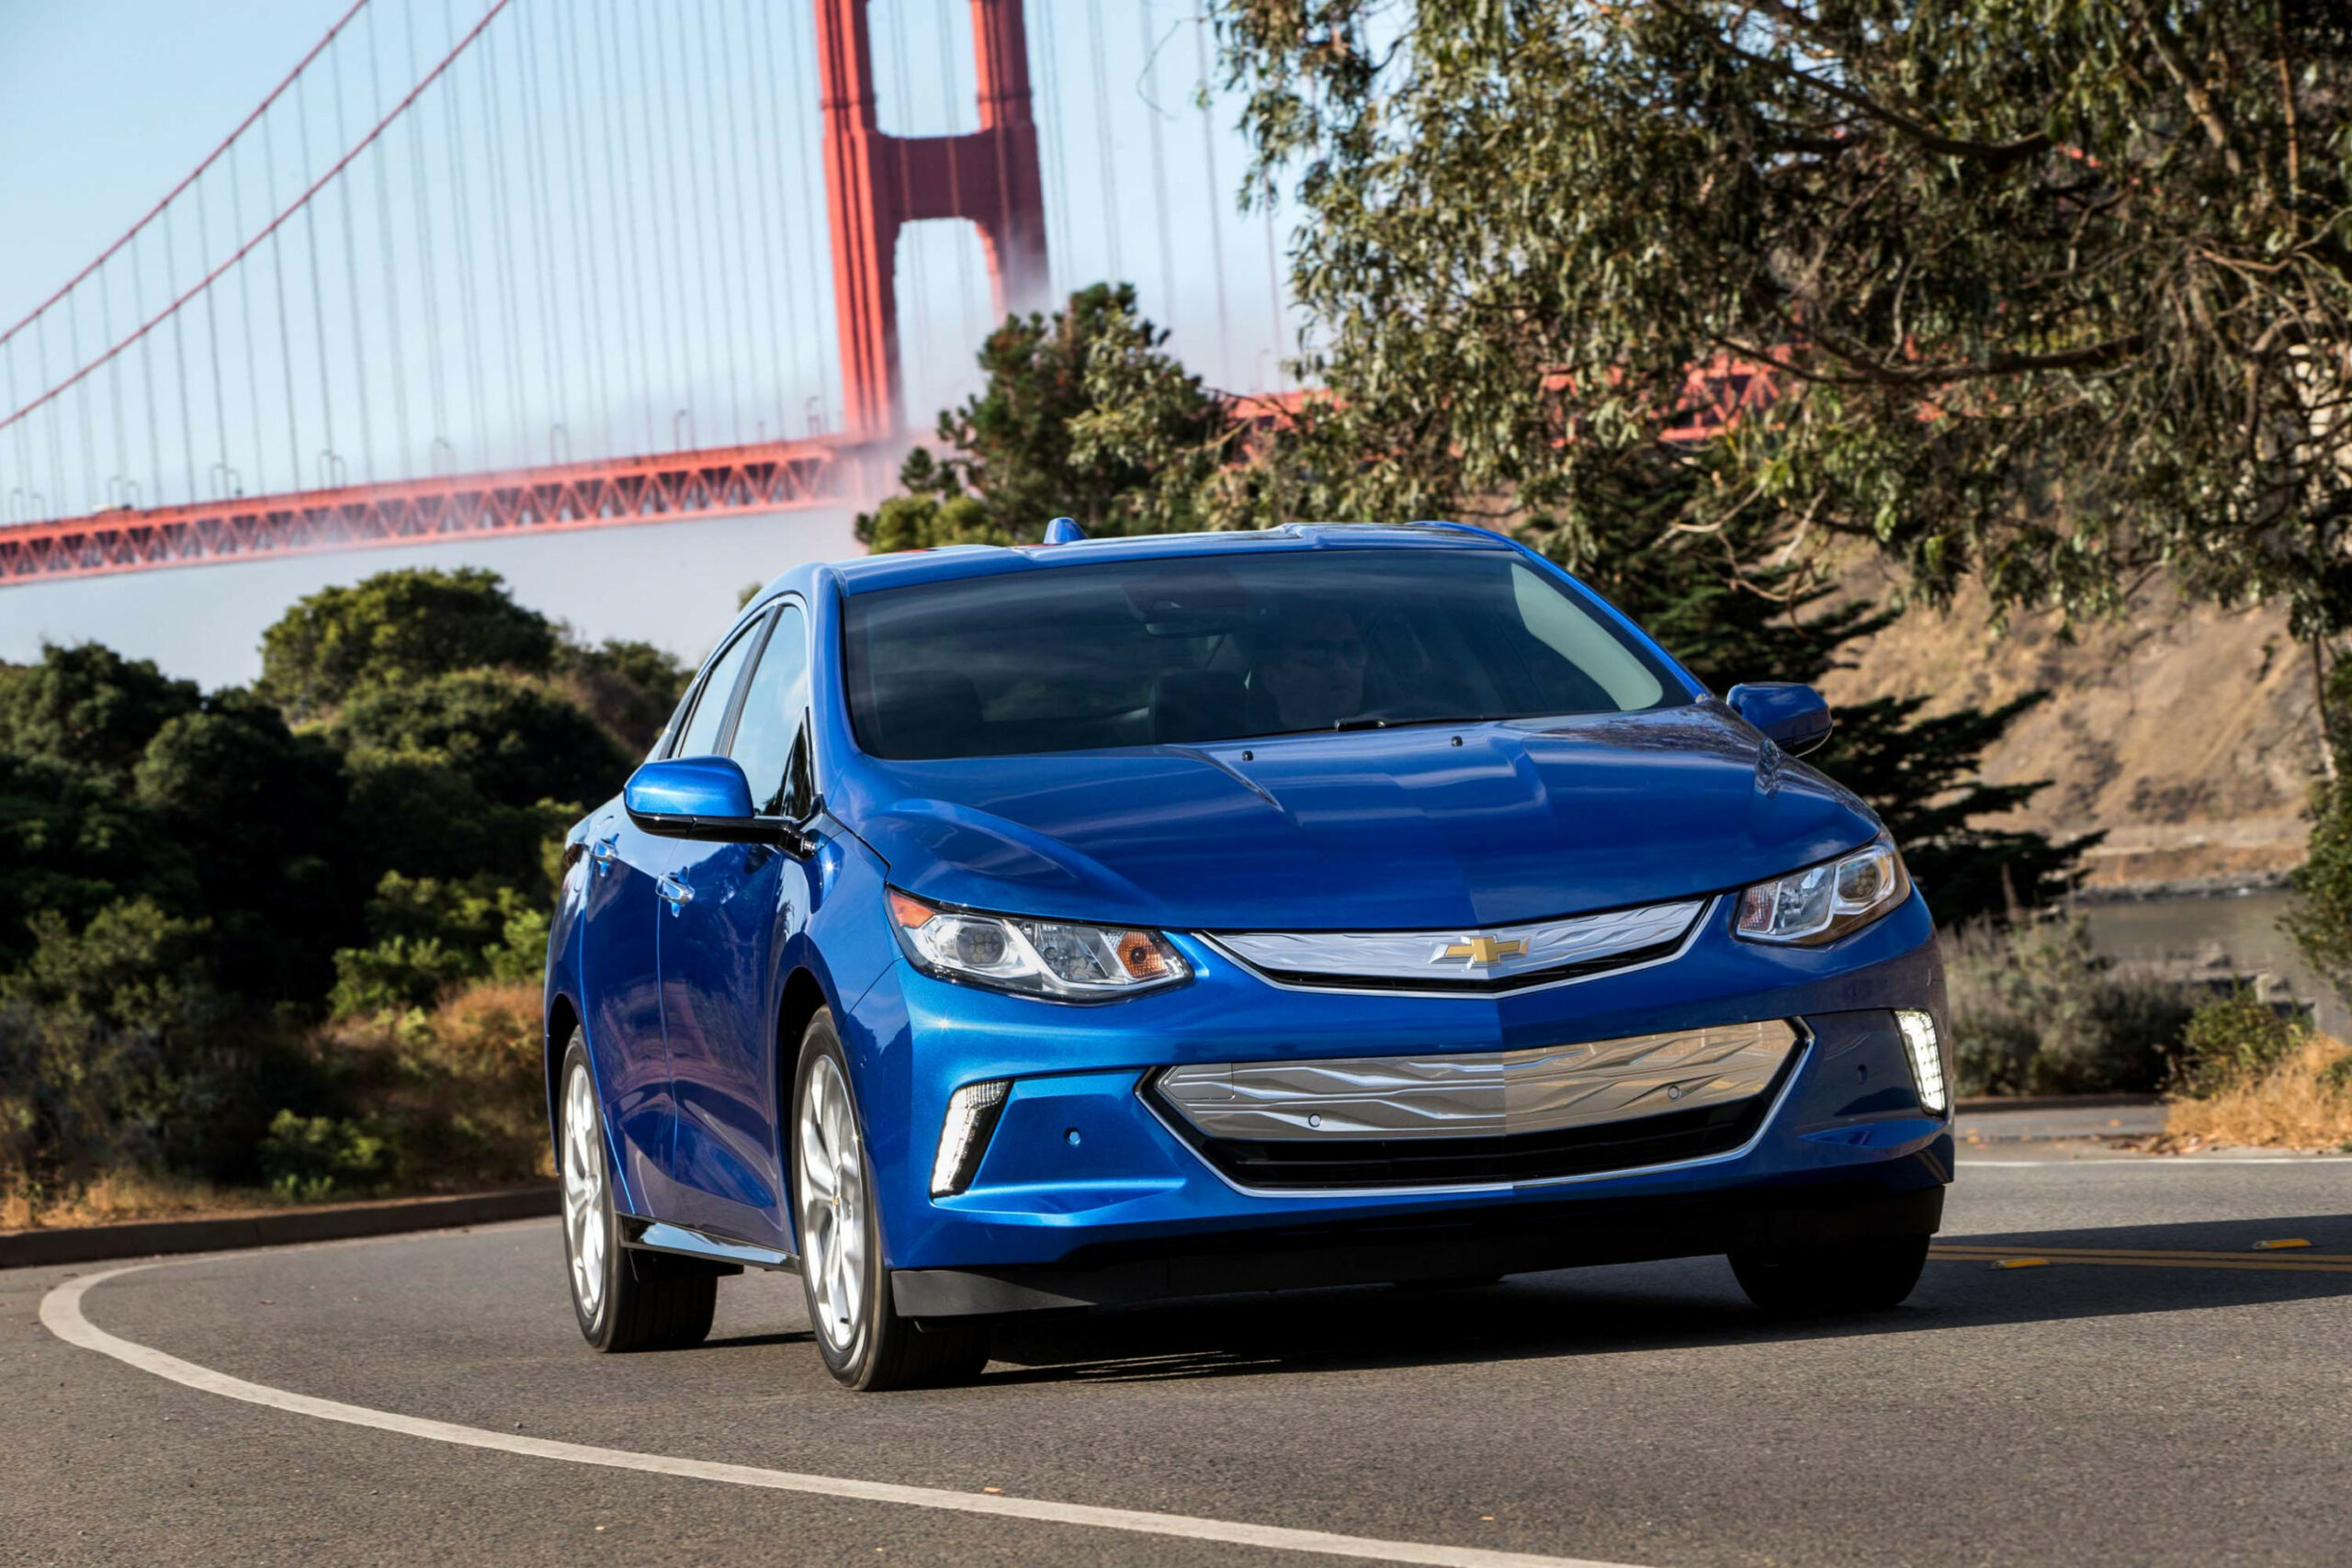 Big deals arrive on 9 Chevy Volt: Get one while you can - 2020 chevrolet volt premier for sale